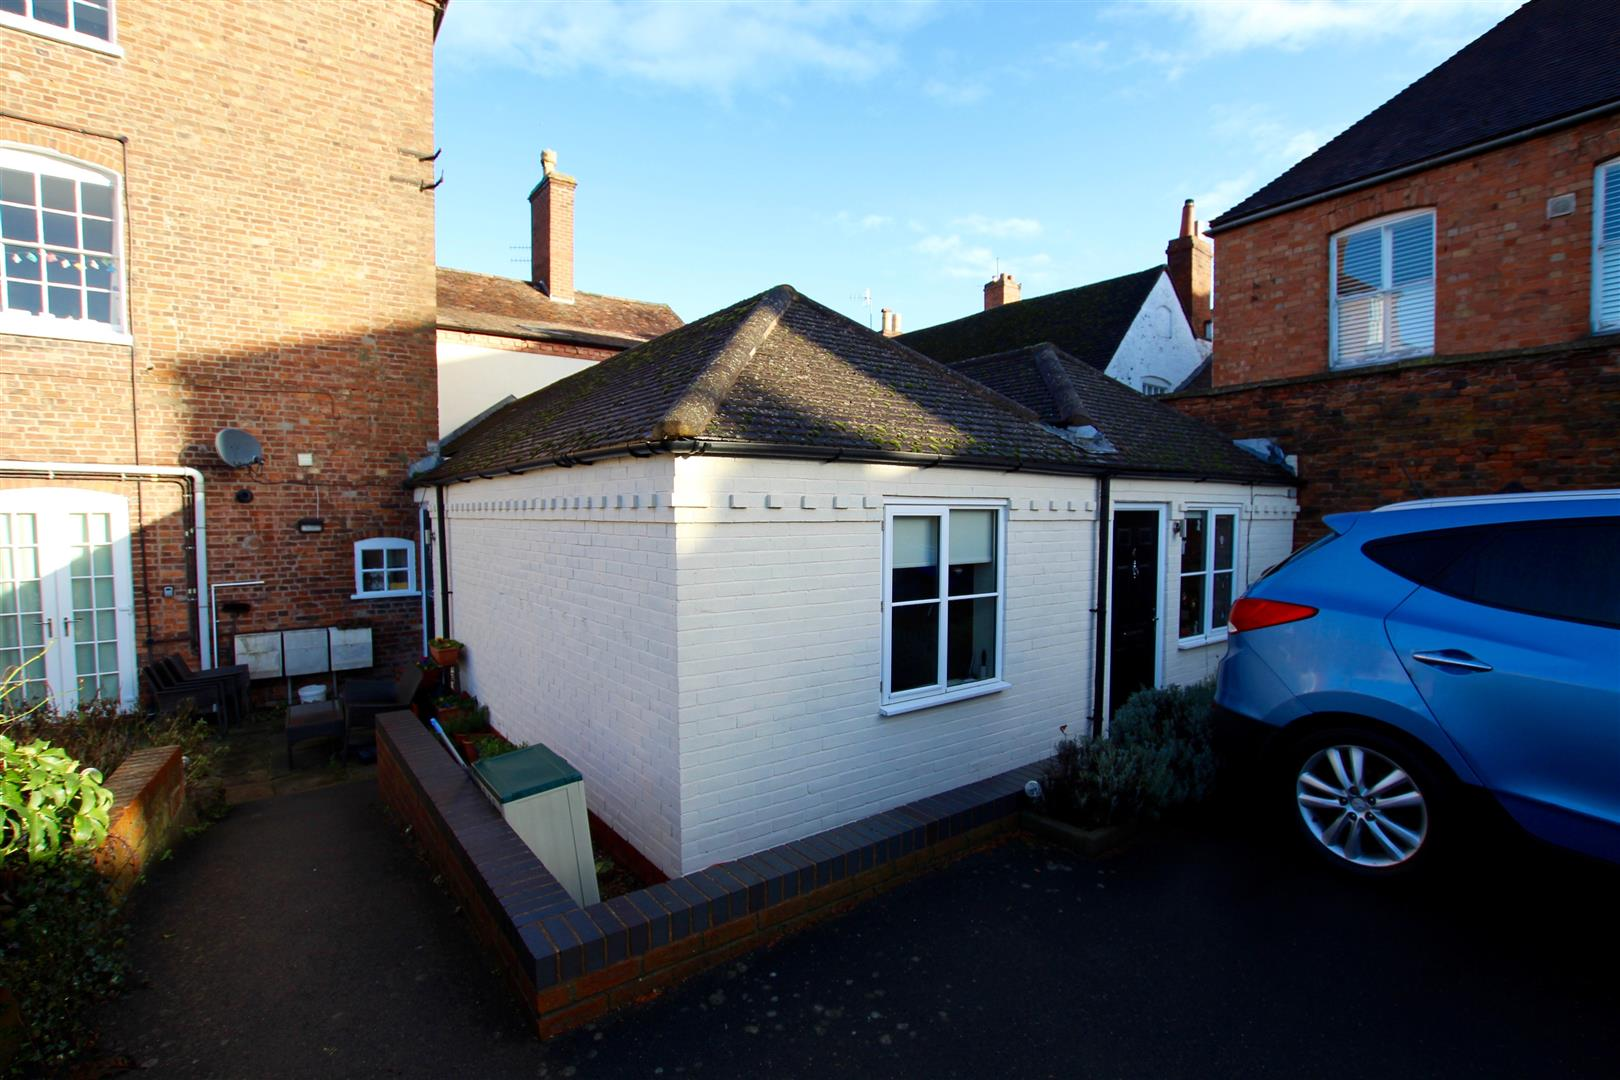 Flat 3 | Upton-Upon-Severn Worcester | Price : 550 | Bedrooms : 1